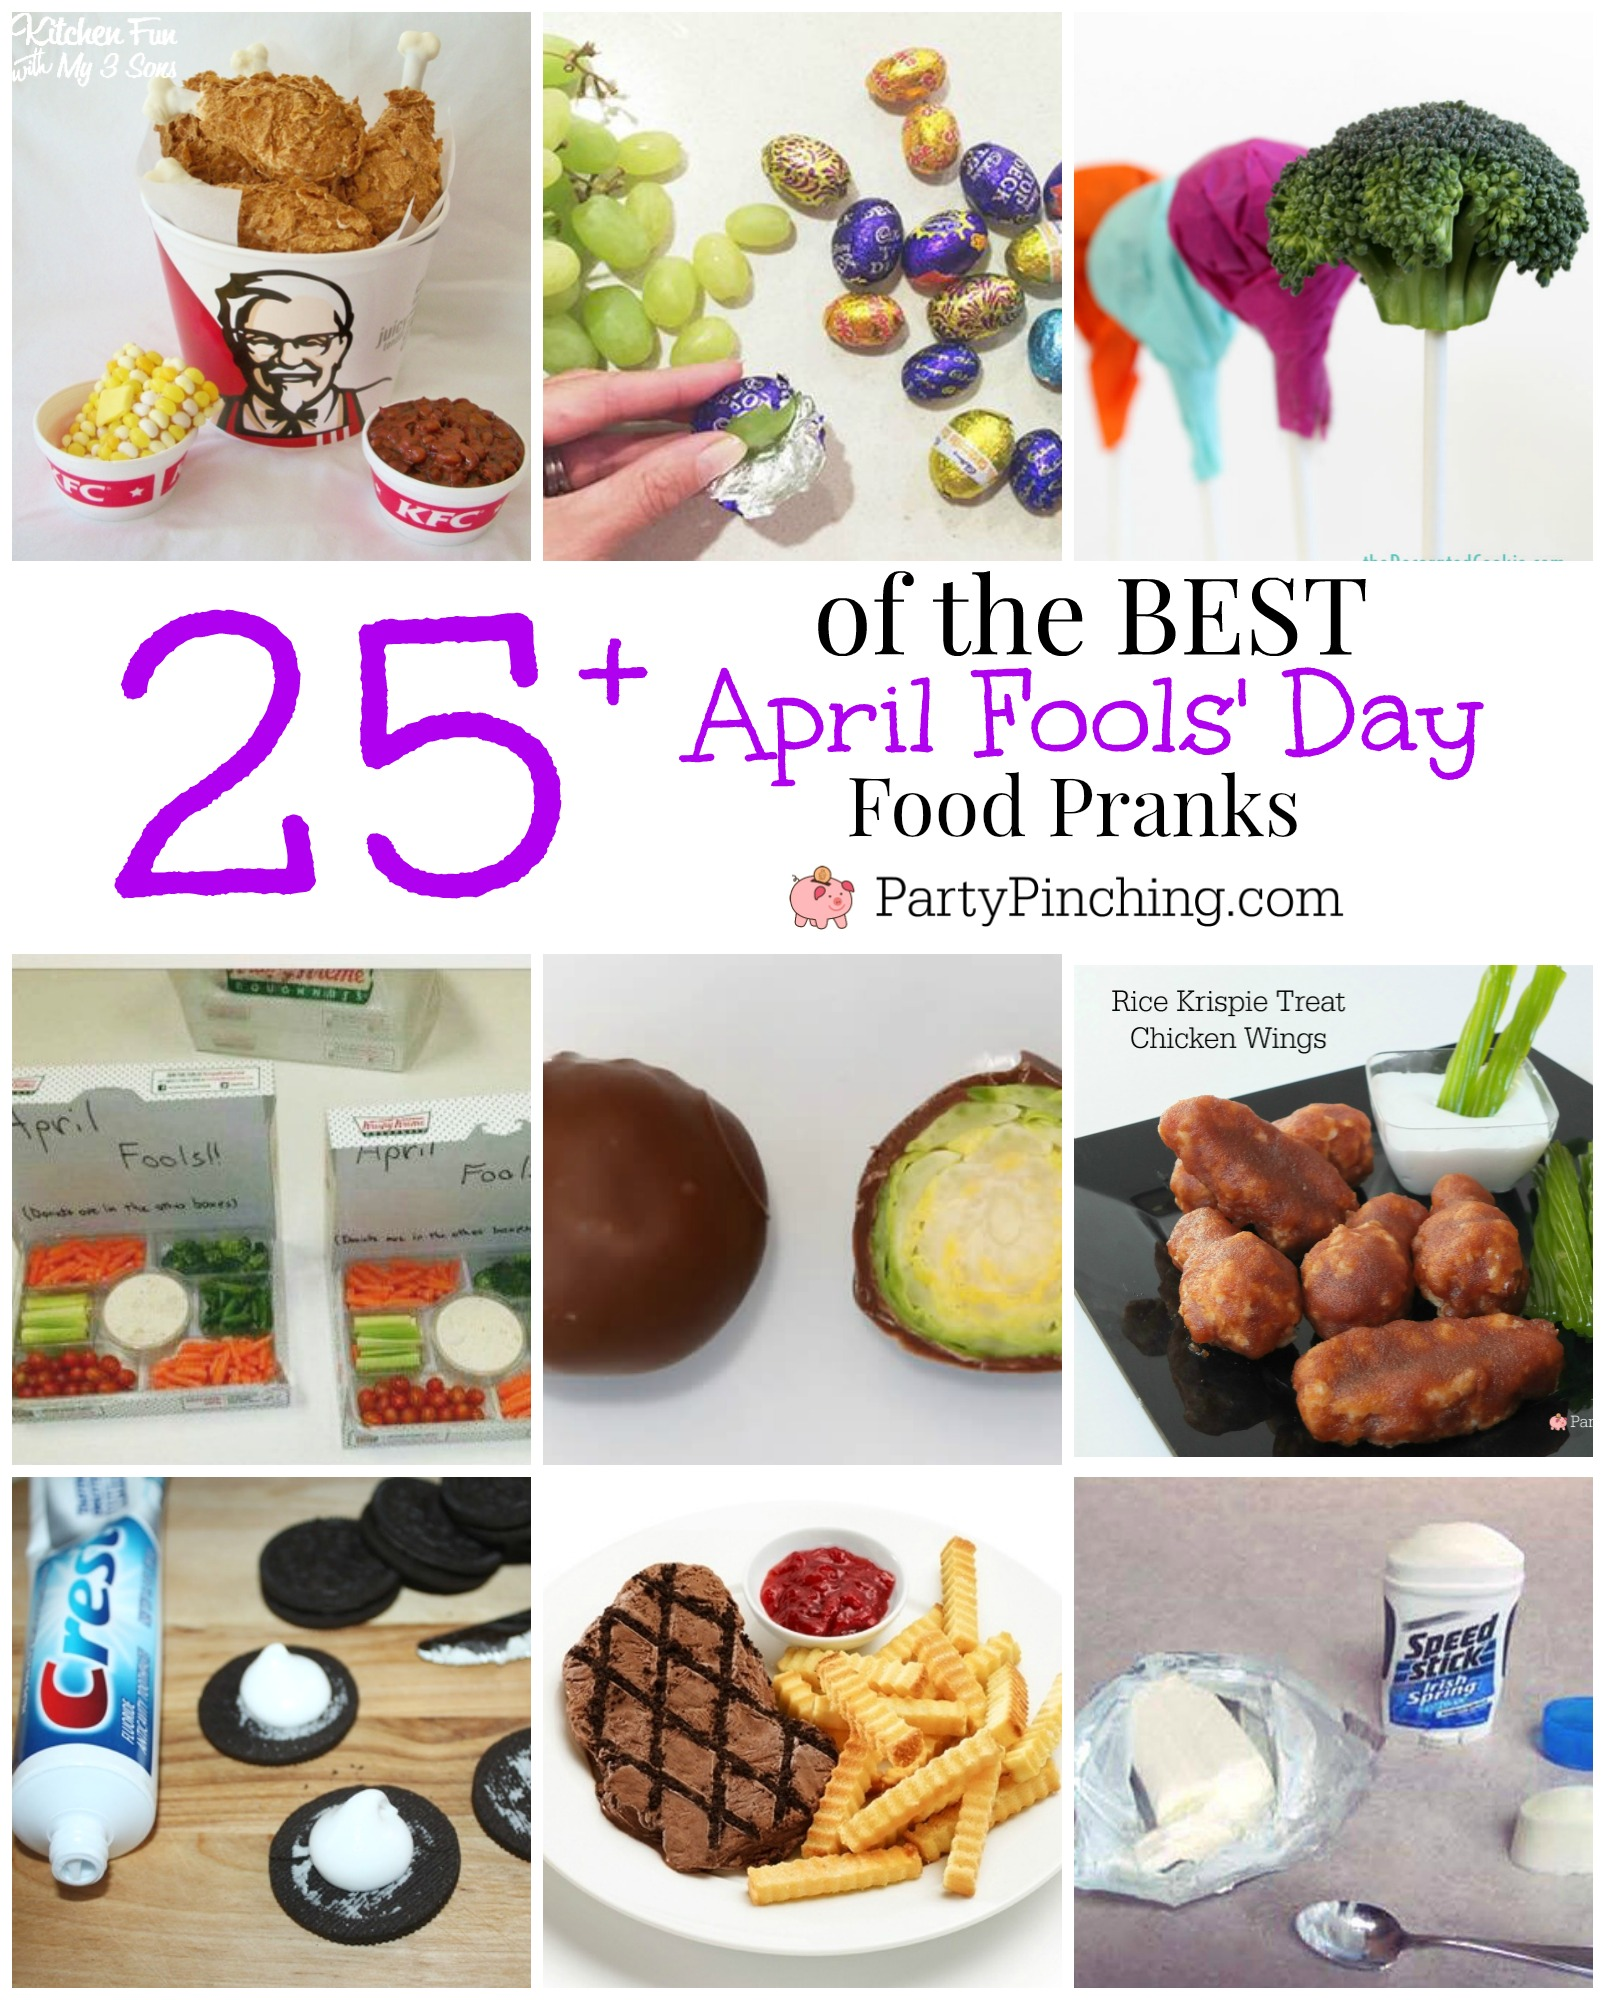 Best April Fools' Day food pranks, joke imposter food, fun easy trick food for friends family and kids